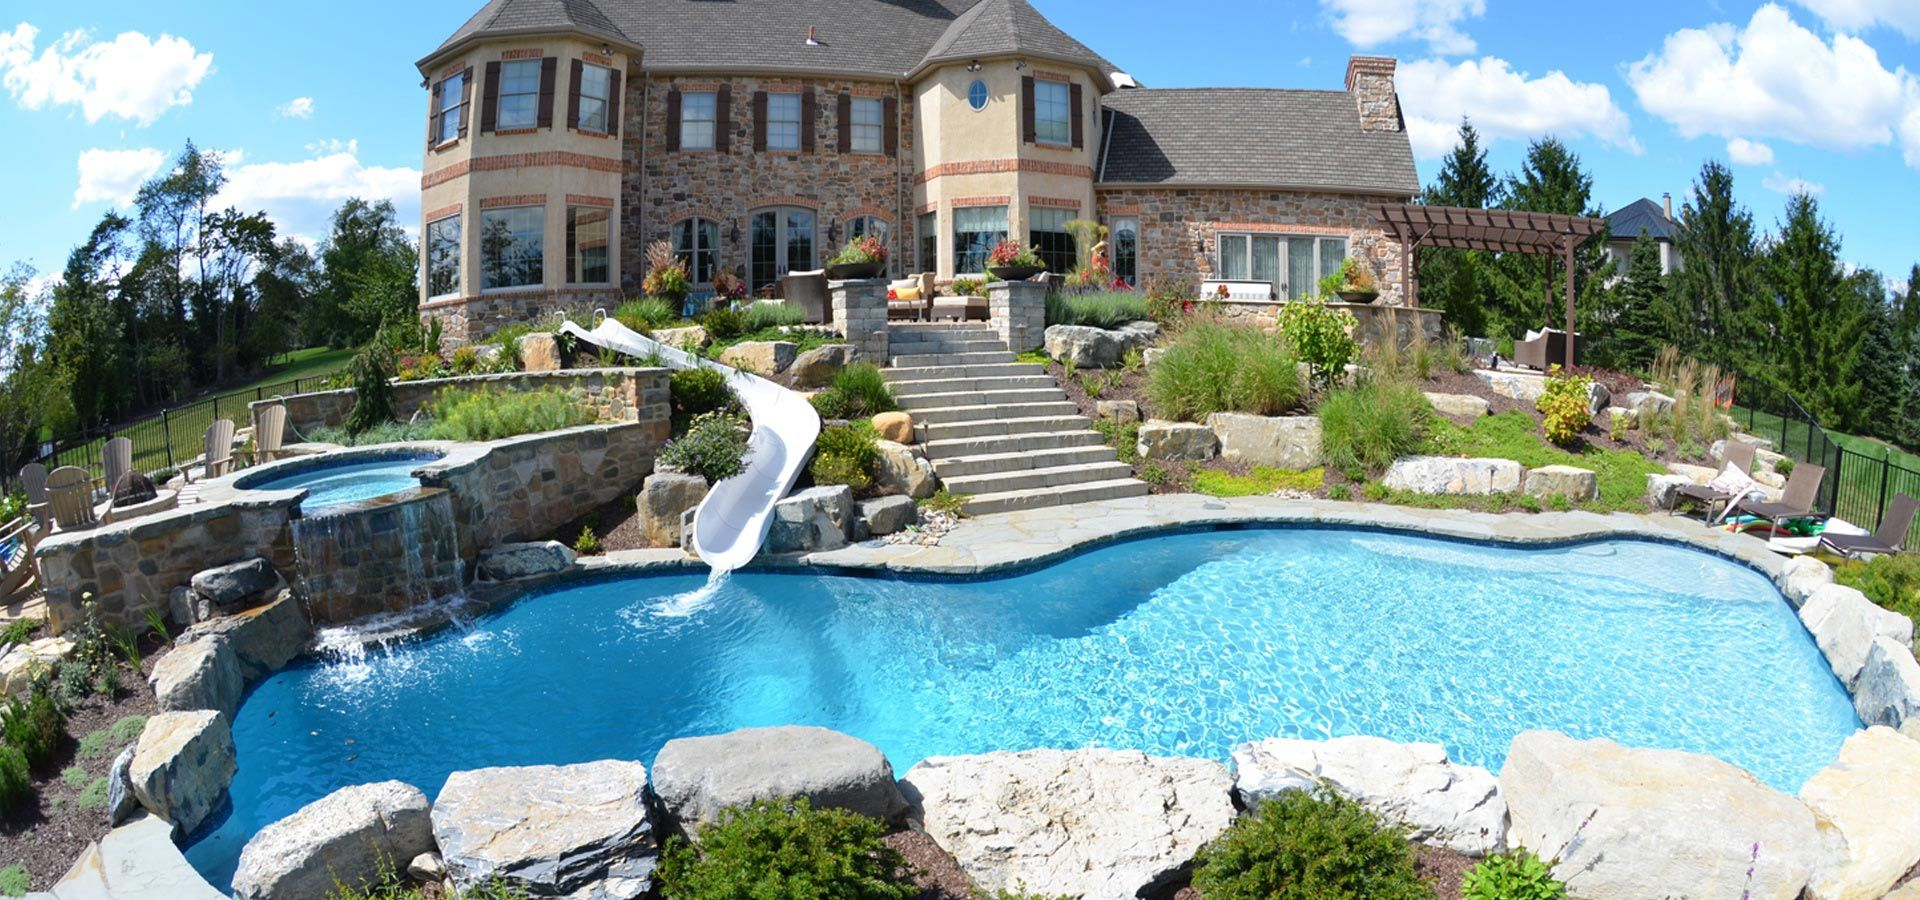 Custom pool with waterslide spa diamond brite finish for Luxury home plans with pools